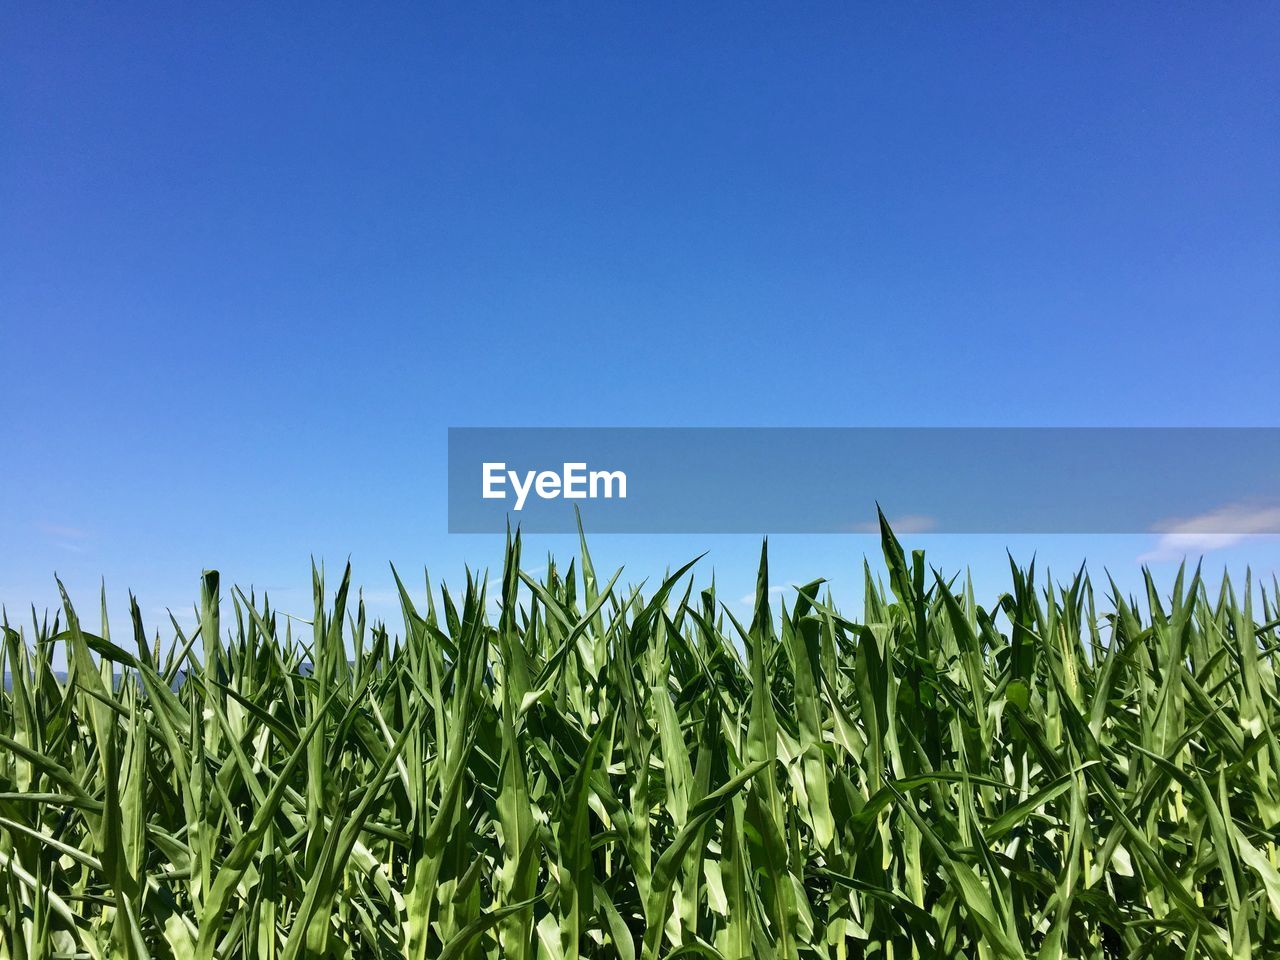 sky, plant, growth, field, green color, agriculture, crop, nature, blue, land, copy space, corn, clear sky, cereal plant, rural scene, landscape, farm, no people, day, beauty in nature, corn - crop, outdoors, plantation